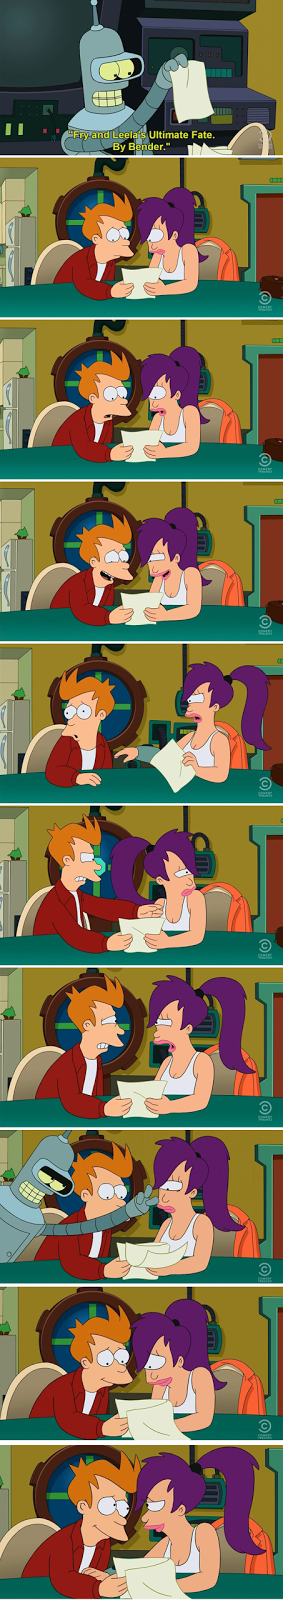 In panel 5, Leela slaps Fry and then in panel 6, Fry slaps Leela back. Without the animation or any slap visual FX, it looks like Fry is about to puke from bad shellfish and then Leela is about to do the same too.